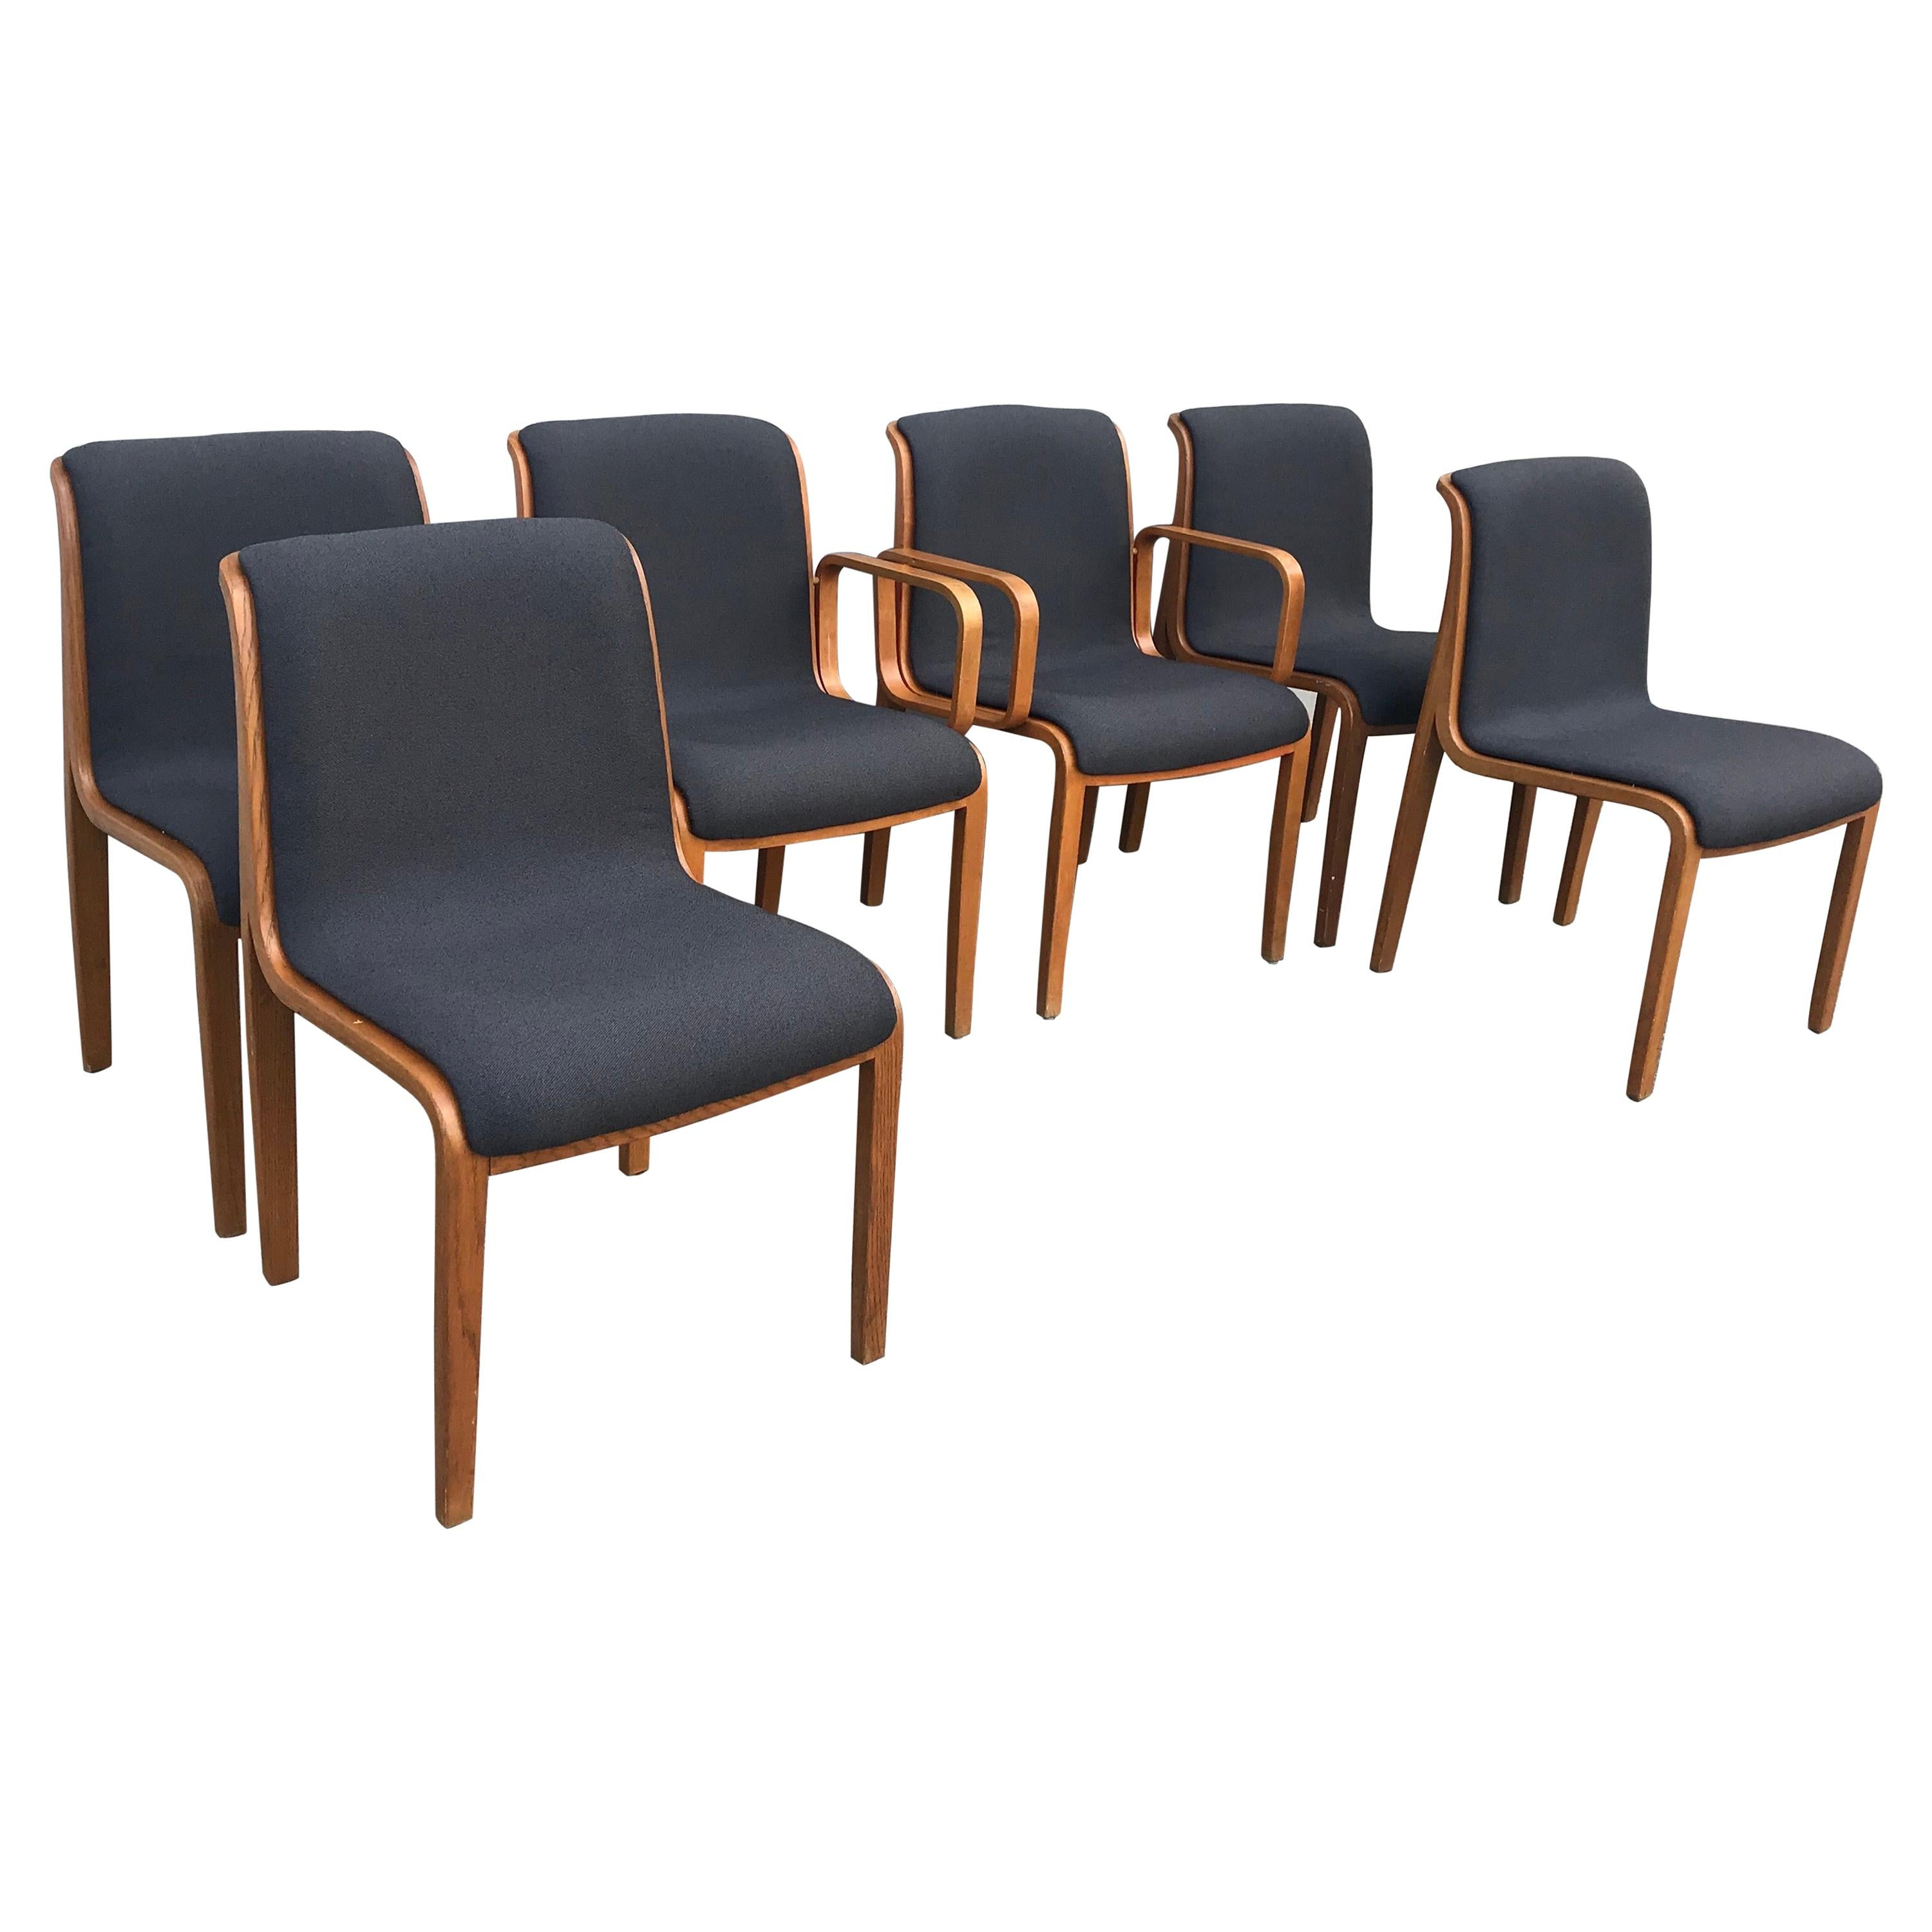 Set of Six Bent Wood Upholstered Dining Chairs by Bill Stephens for Knoll